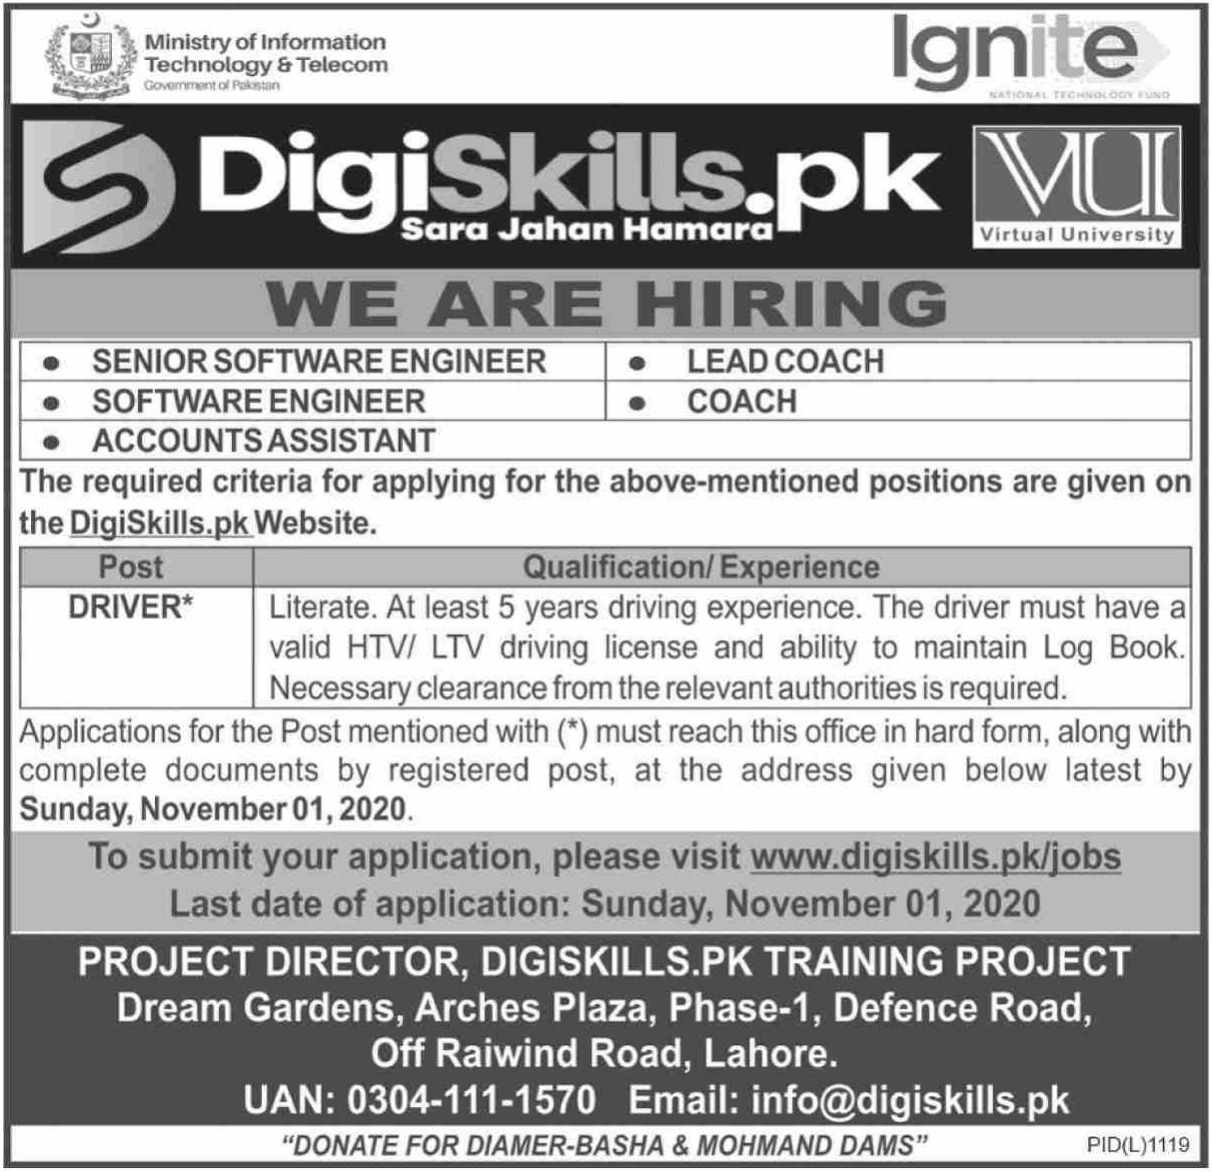 VU DigiSkills.pk Jobs October 2020